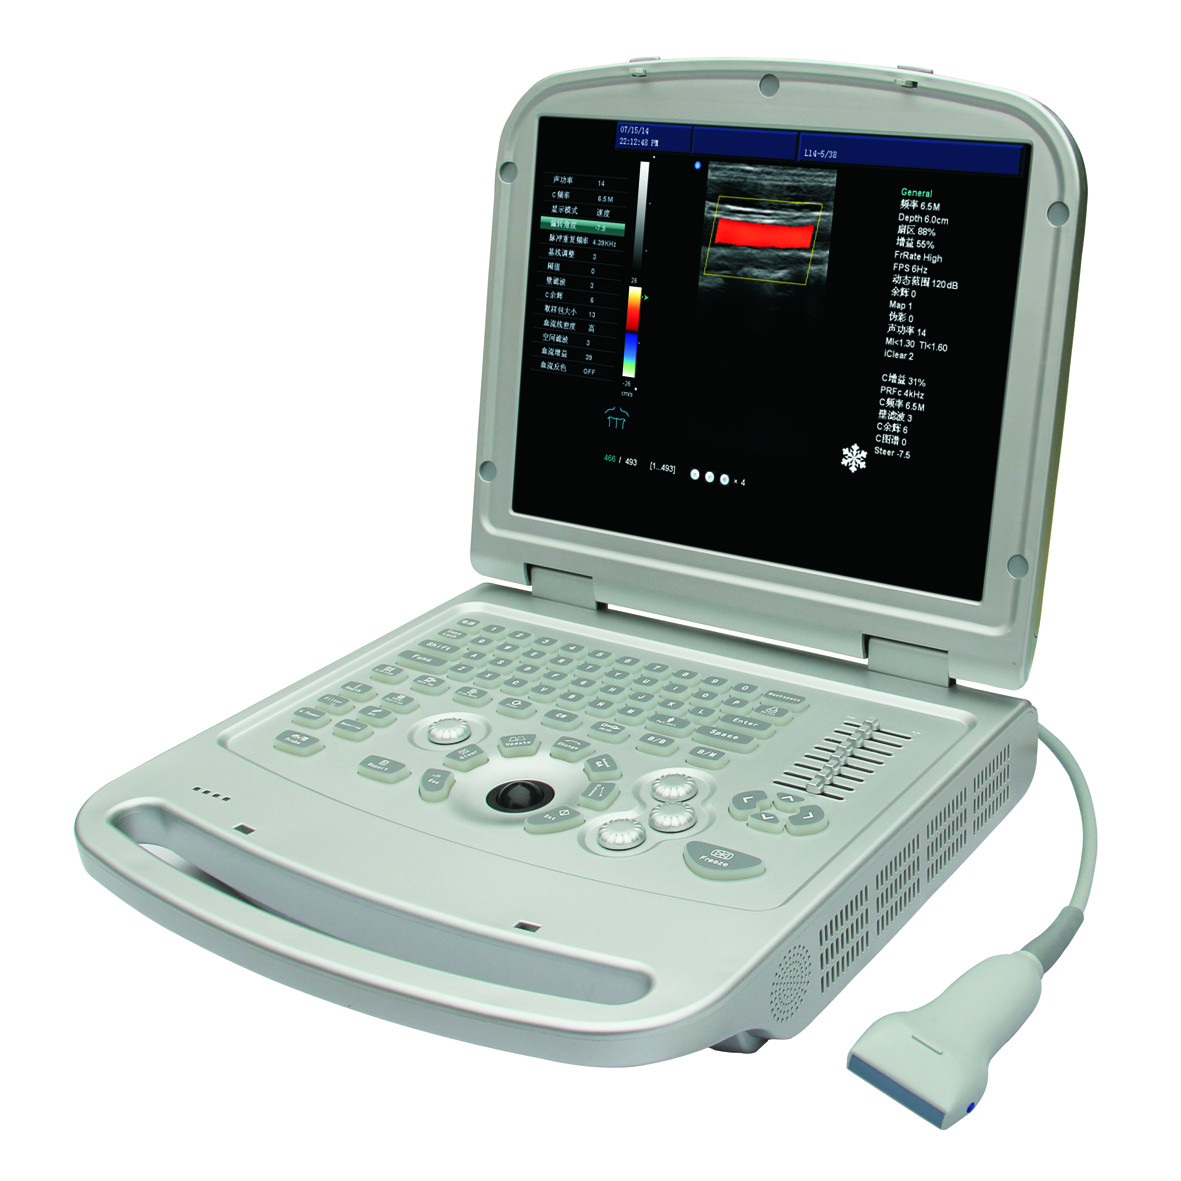 Full digital portable Color Doppler Ultrasound scanner